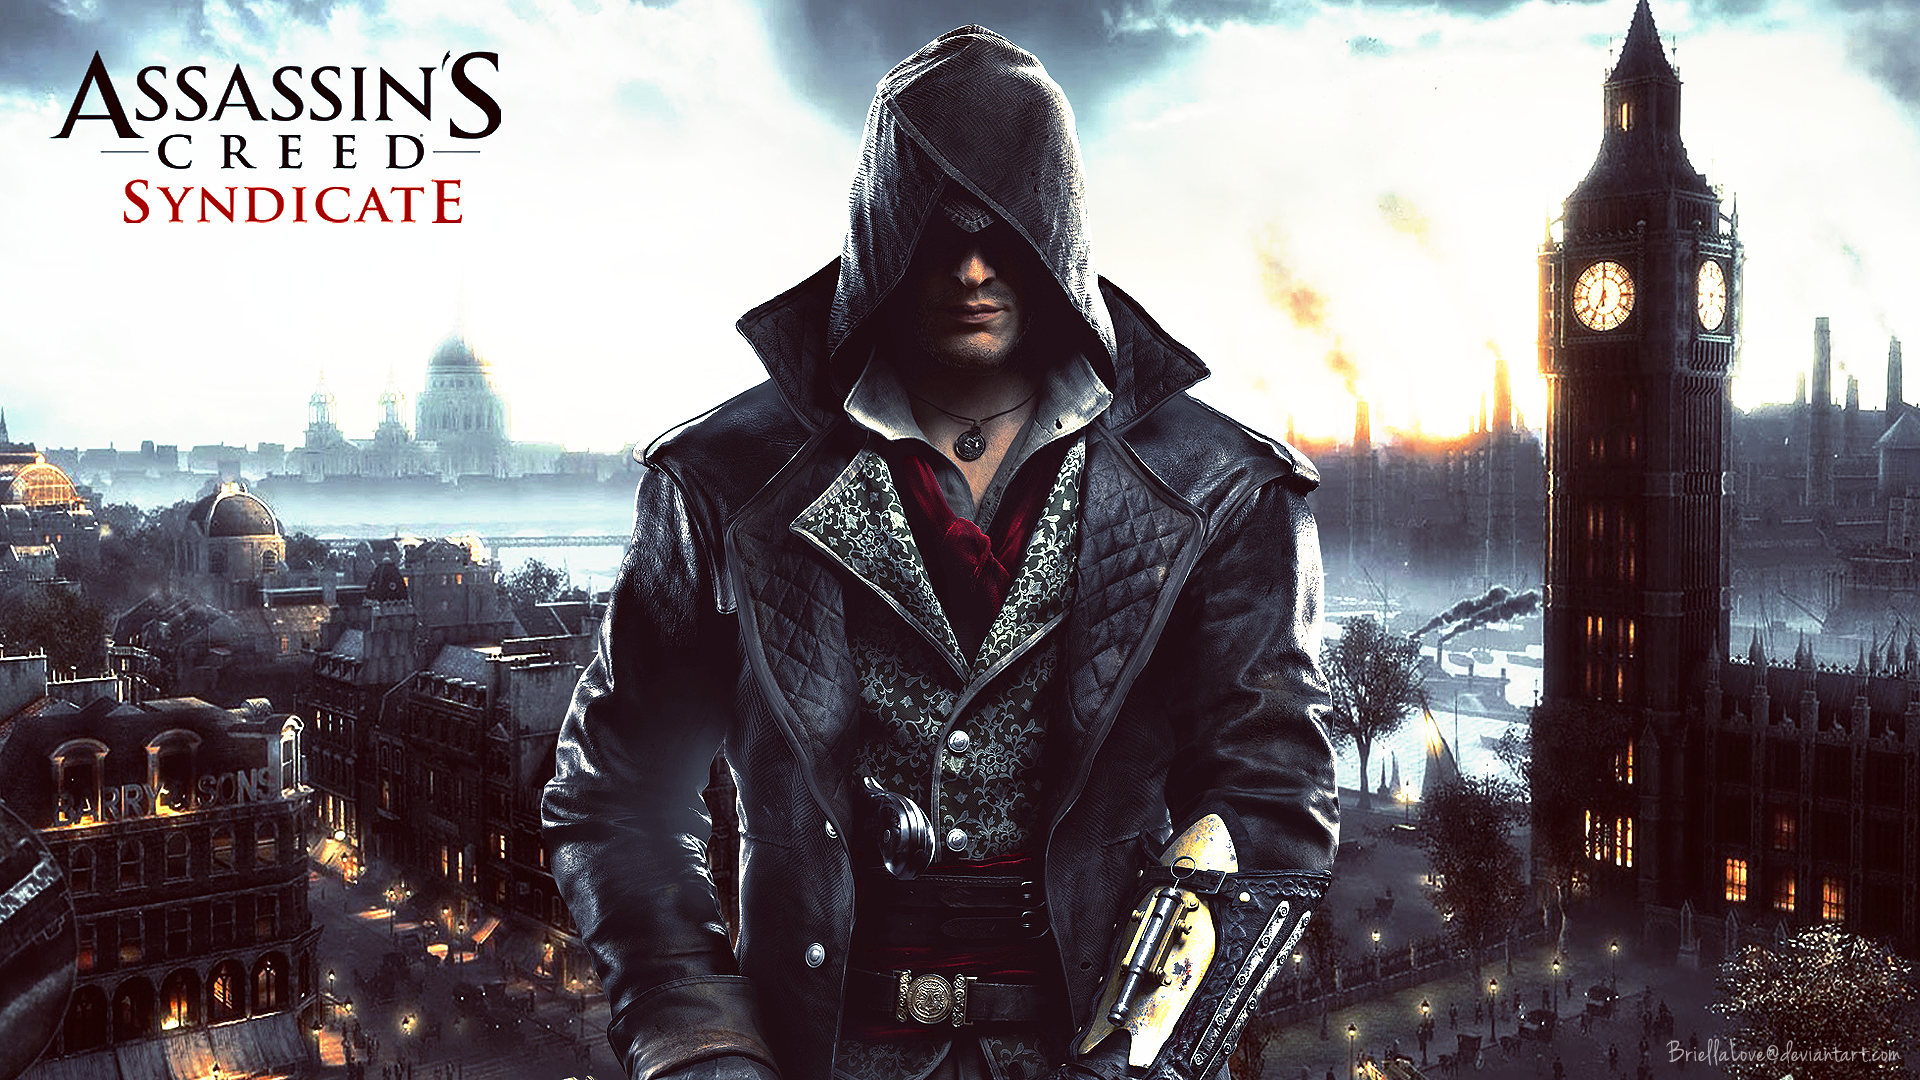 Assassin S Creed Syndicate Hd Wallpaper By Briellalove On Deviantart